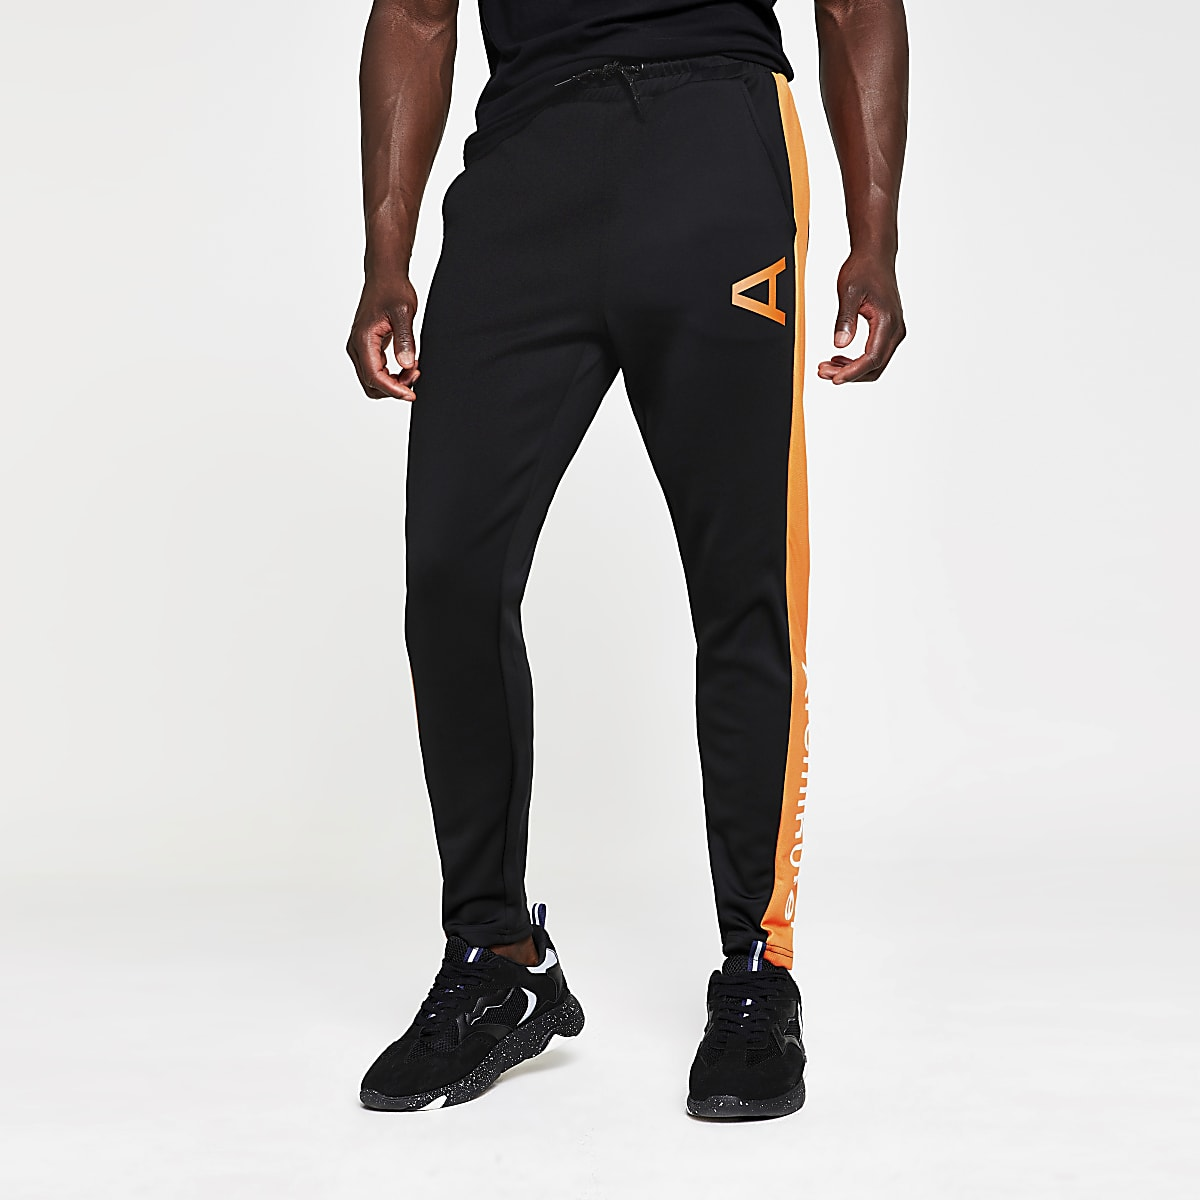 Arcminute black joggers